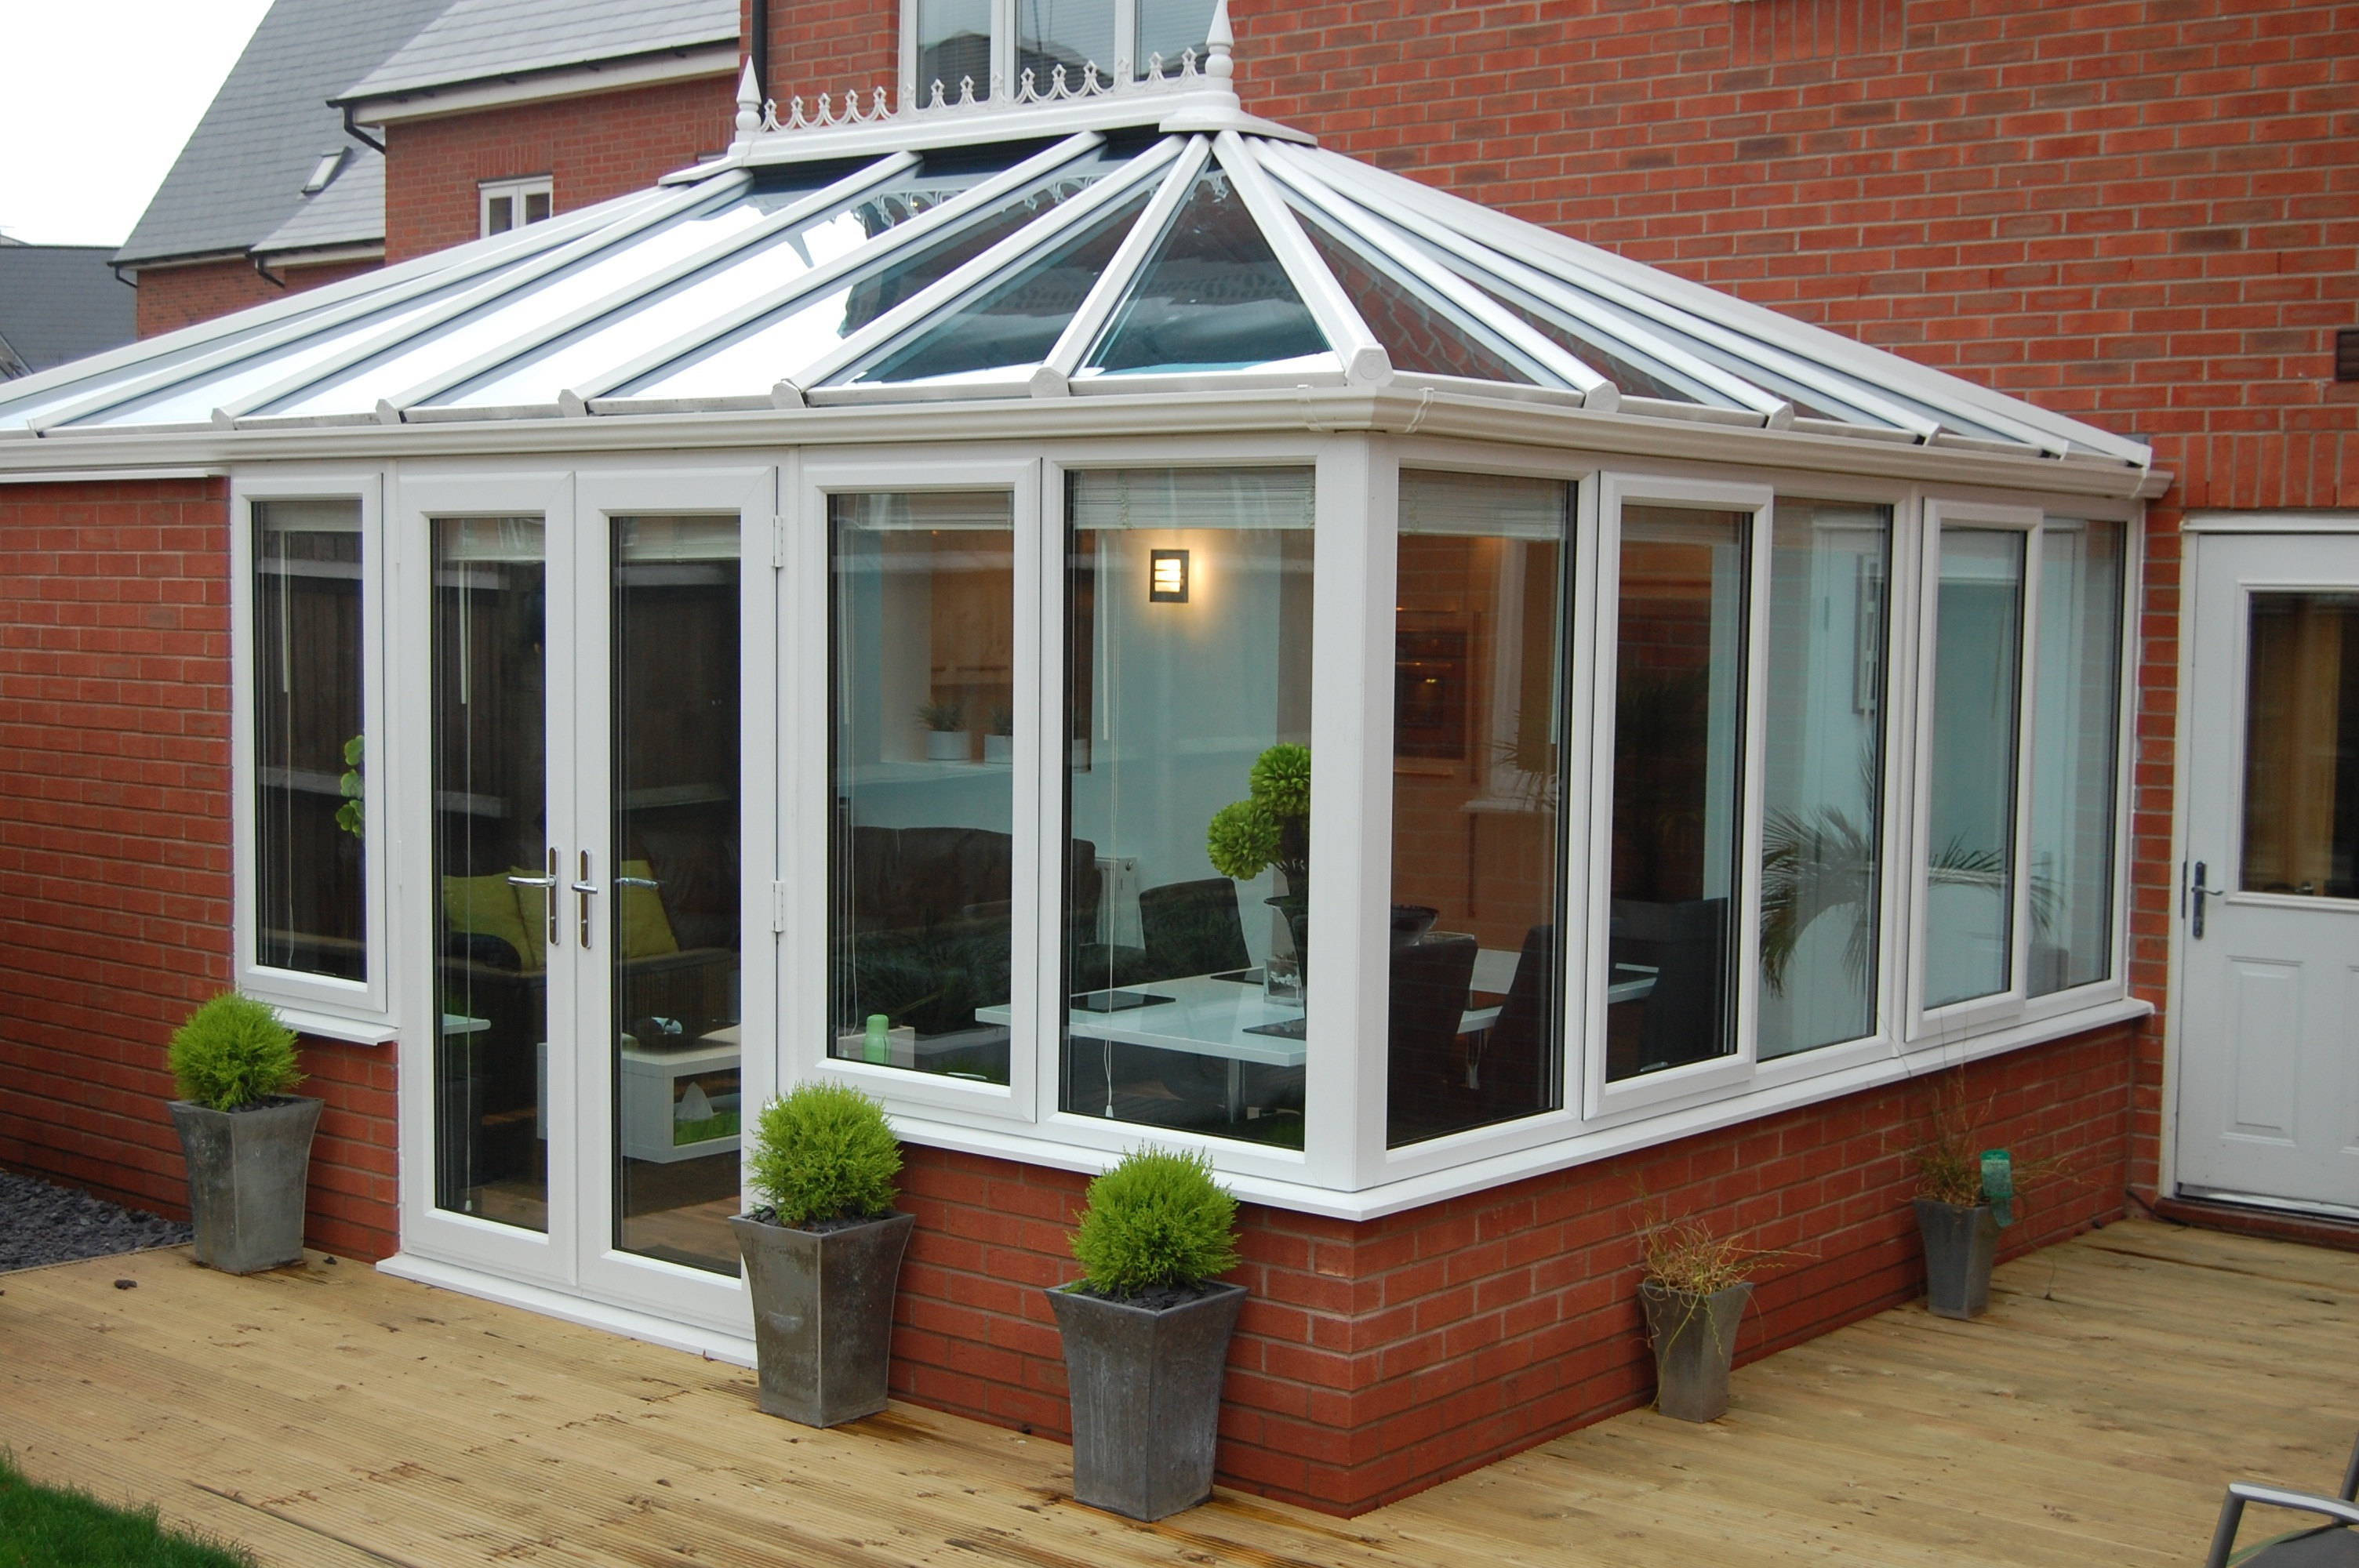 Conservatories Stoke On Trent Conservatory Build In Stoke